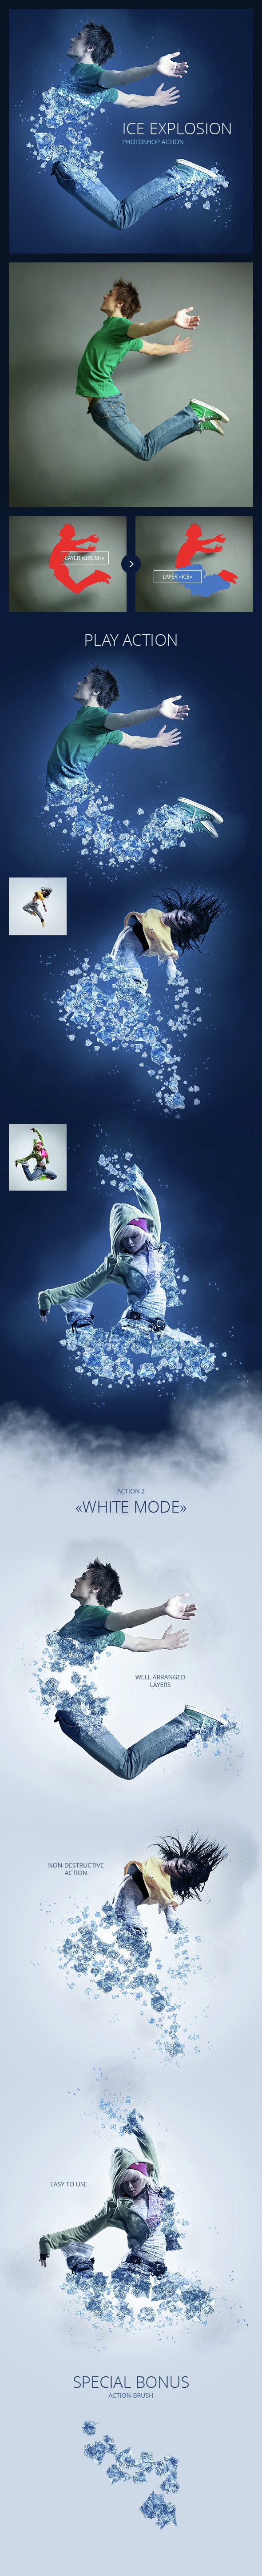 Ice Explosion - Photo Effects Actions